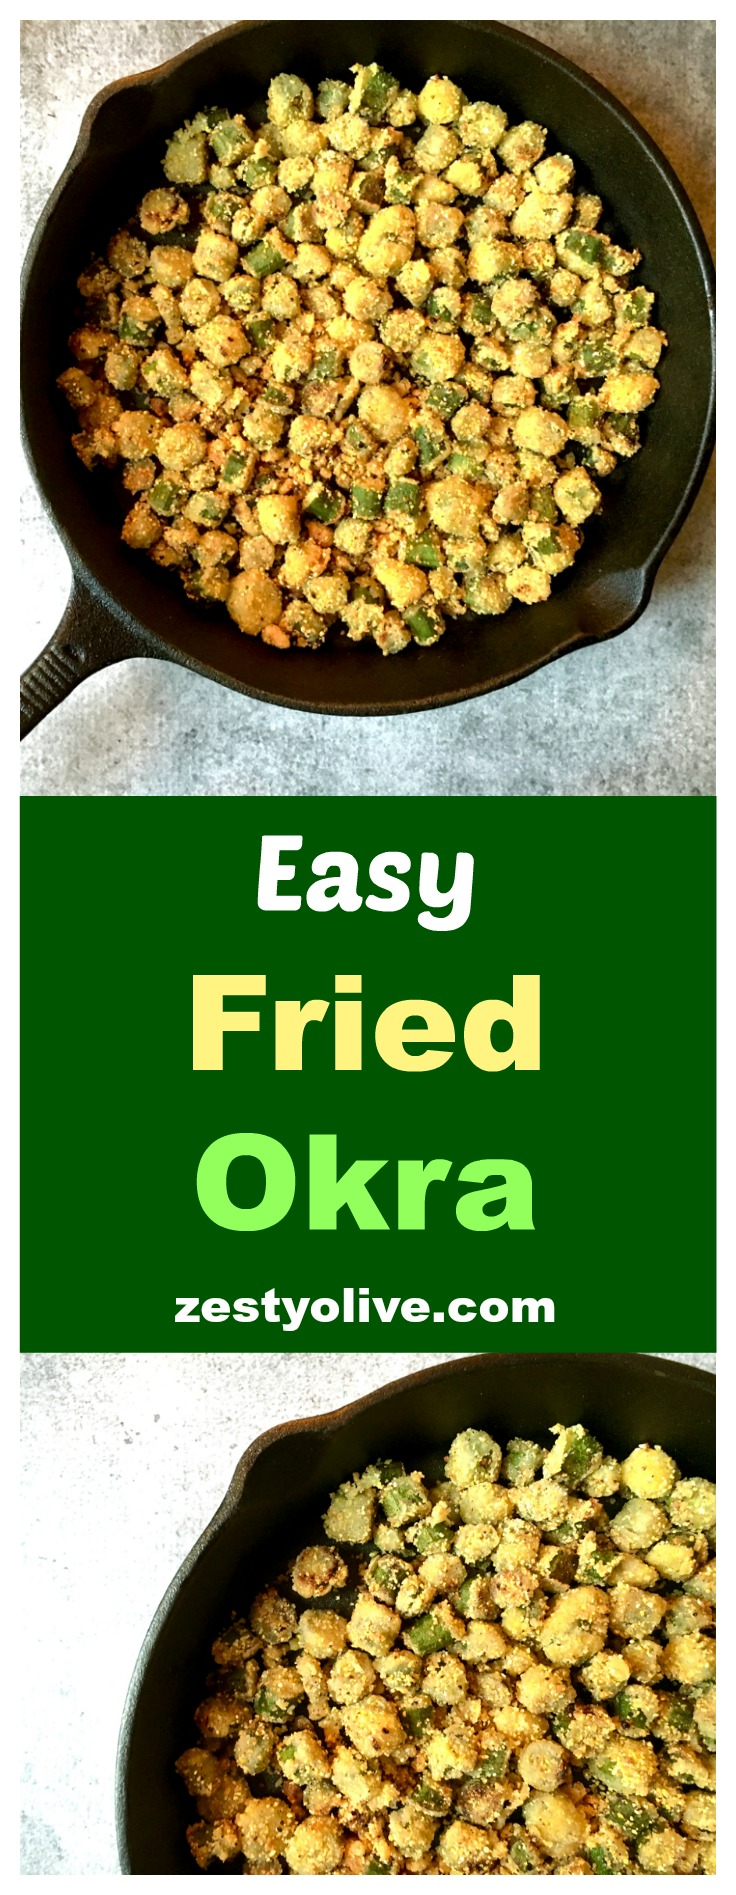 Easy Fried Okra Recipe